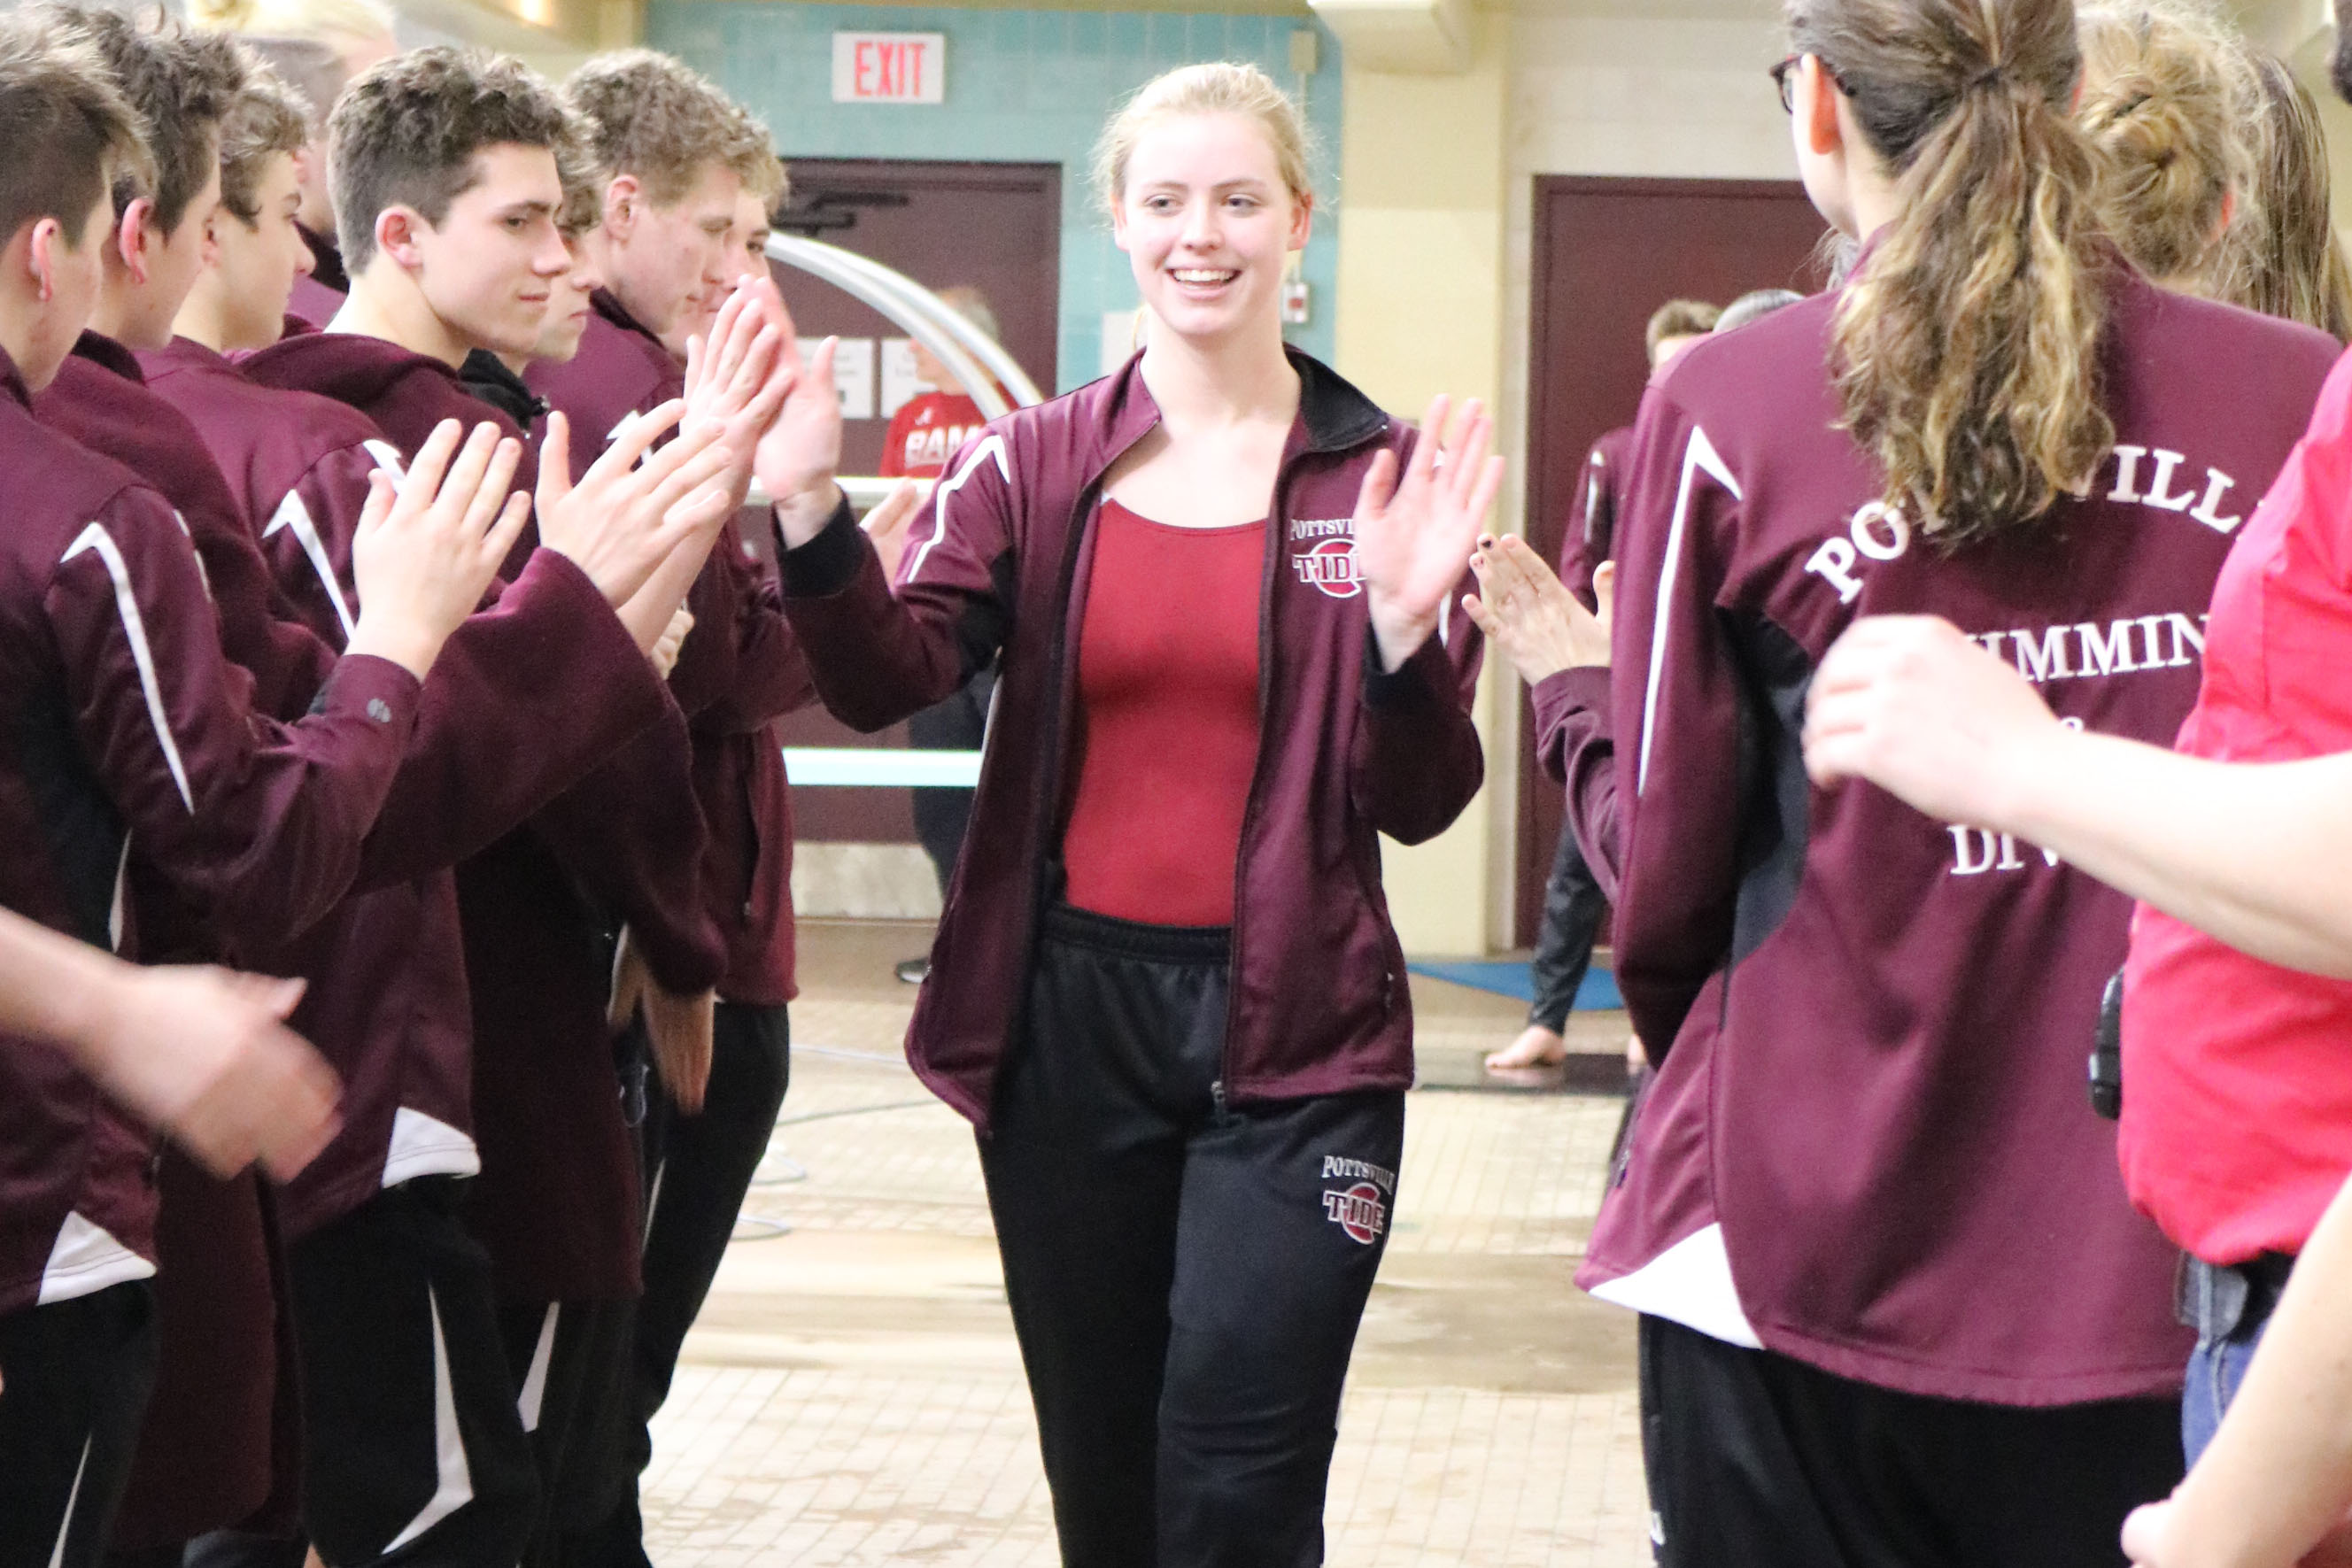 """Walking down the aisle aisle formed by her teammates, senior Sarah Corse-Campion receives high fives on senior night. Senior night was held January 31 against Mahanoy Area. """"I will miss everything about high school swimming, especially bonding with my best friends,"""" Corse-Campion said."""